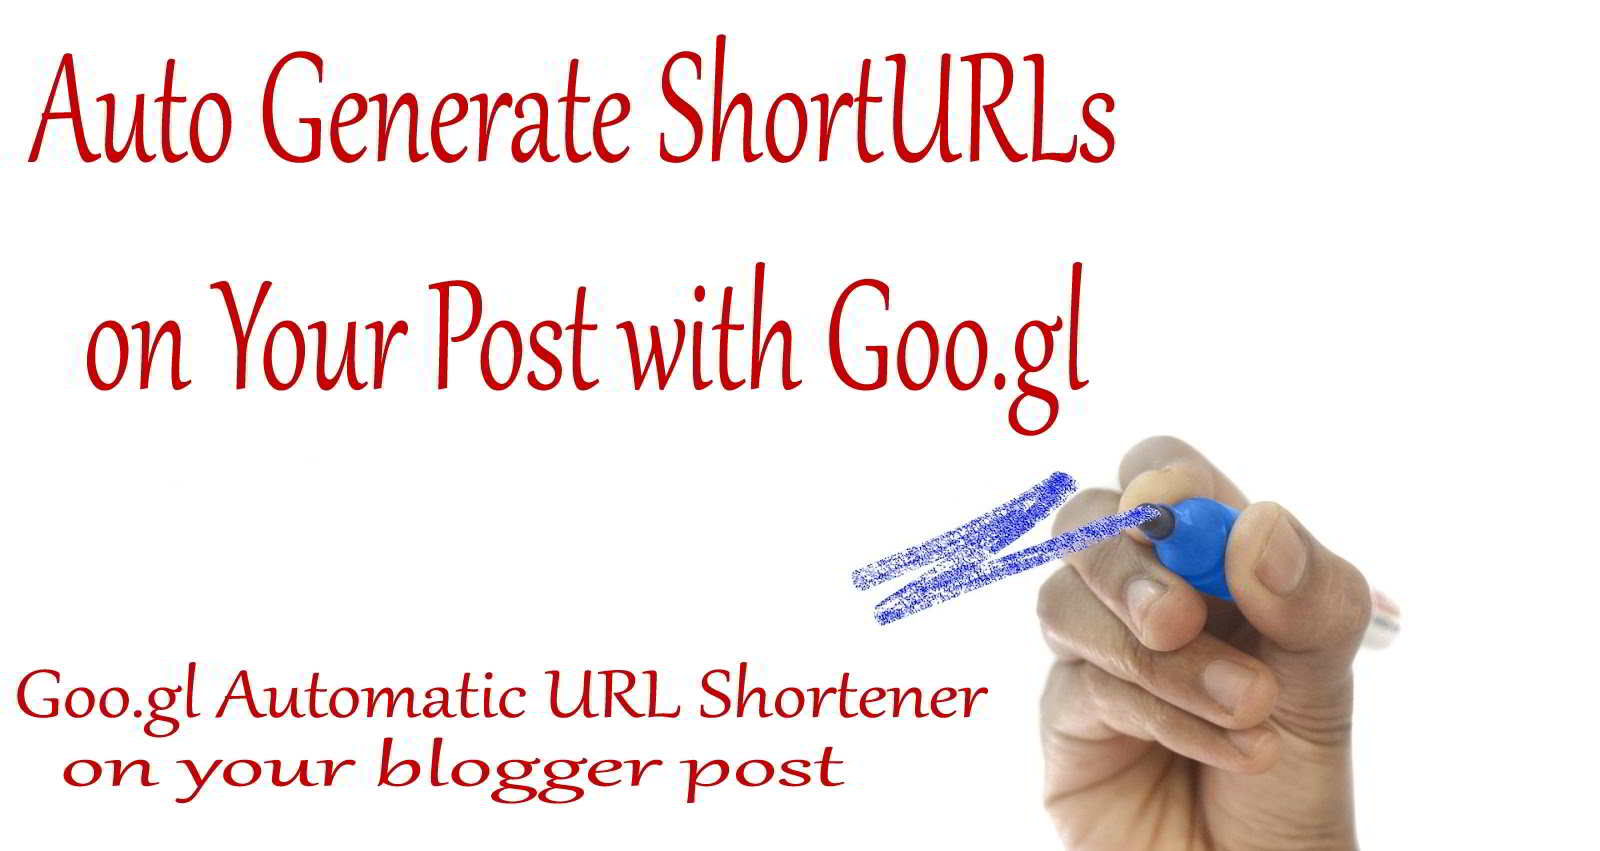 Tutorial: Very easy How to Make Auto Generate Short URLs of Your Posts, Create Google Short URLs in Blogger with Goo.gl, I will explain with a complete, step by step